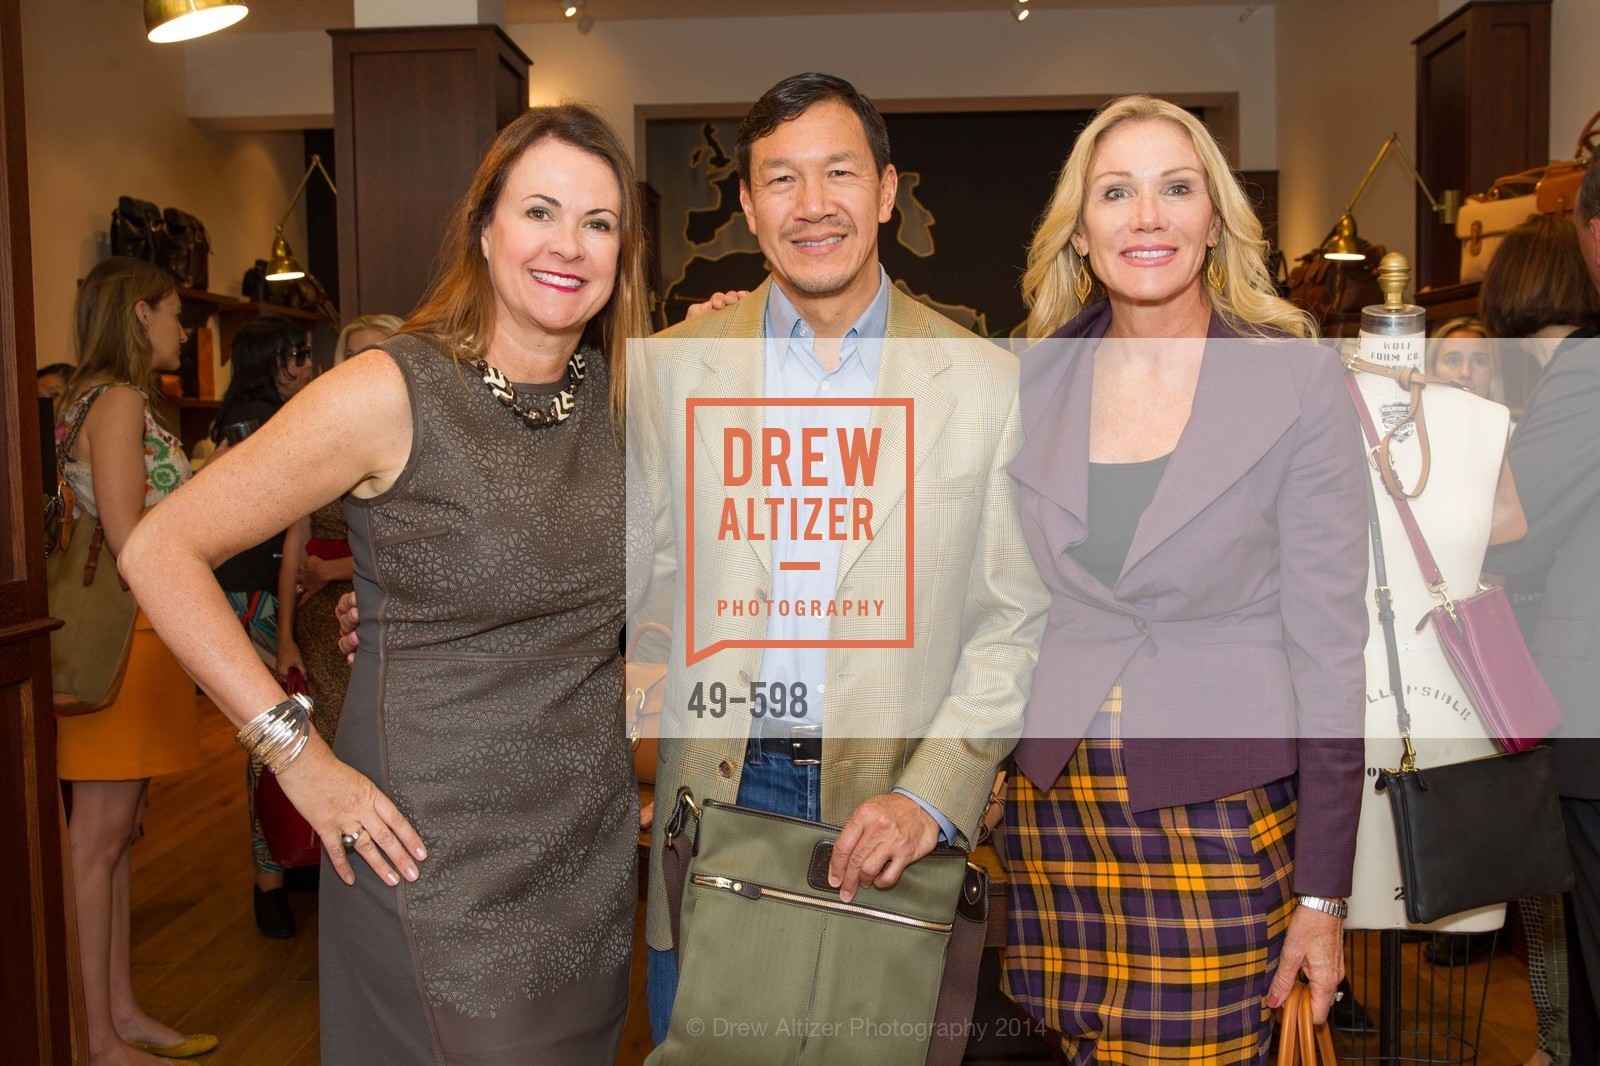 Tanya Peterson, Tim Wu, Rosemary Baker, GHURKA FALL FASHION Press Preview Honoring the ZOO BOARD, US, October 8th, 2014,Drew Altizer, Drew Altizer Photography, full-service agency, private events, San Francisco photographer, photographer california